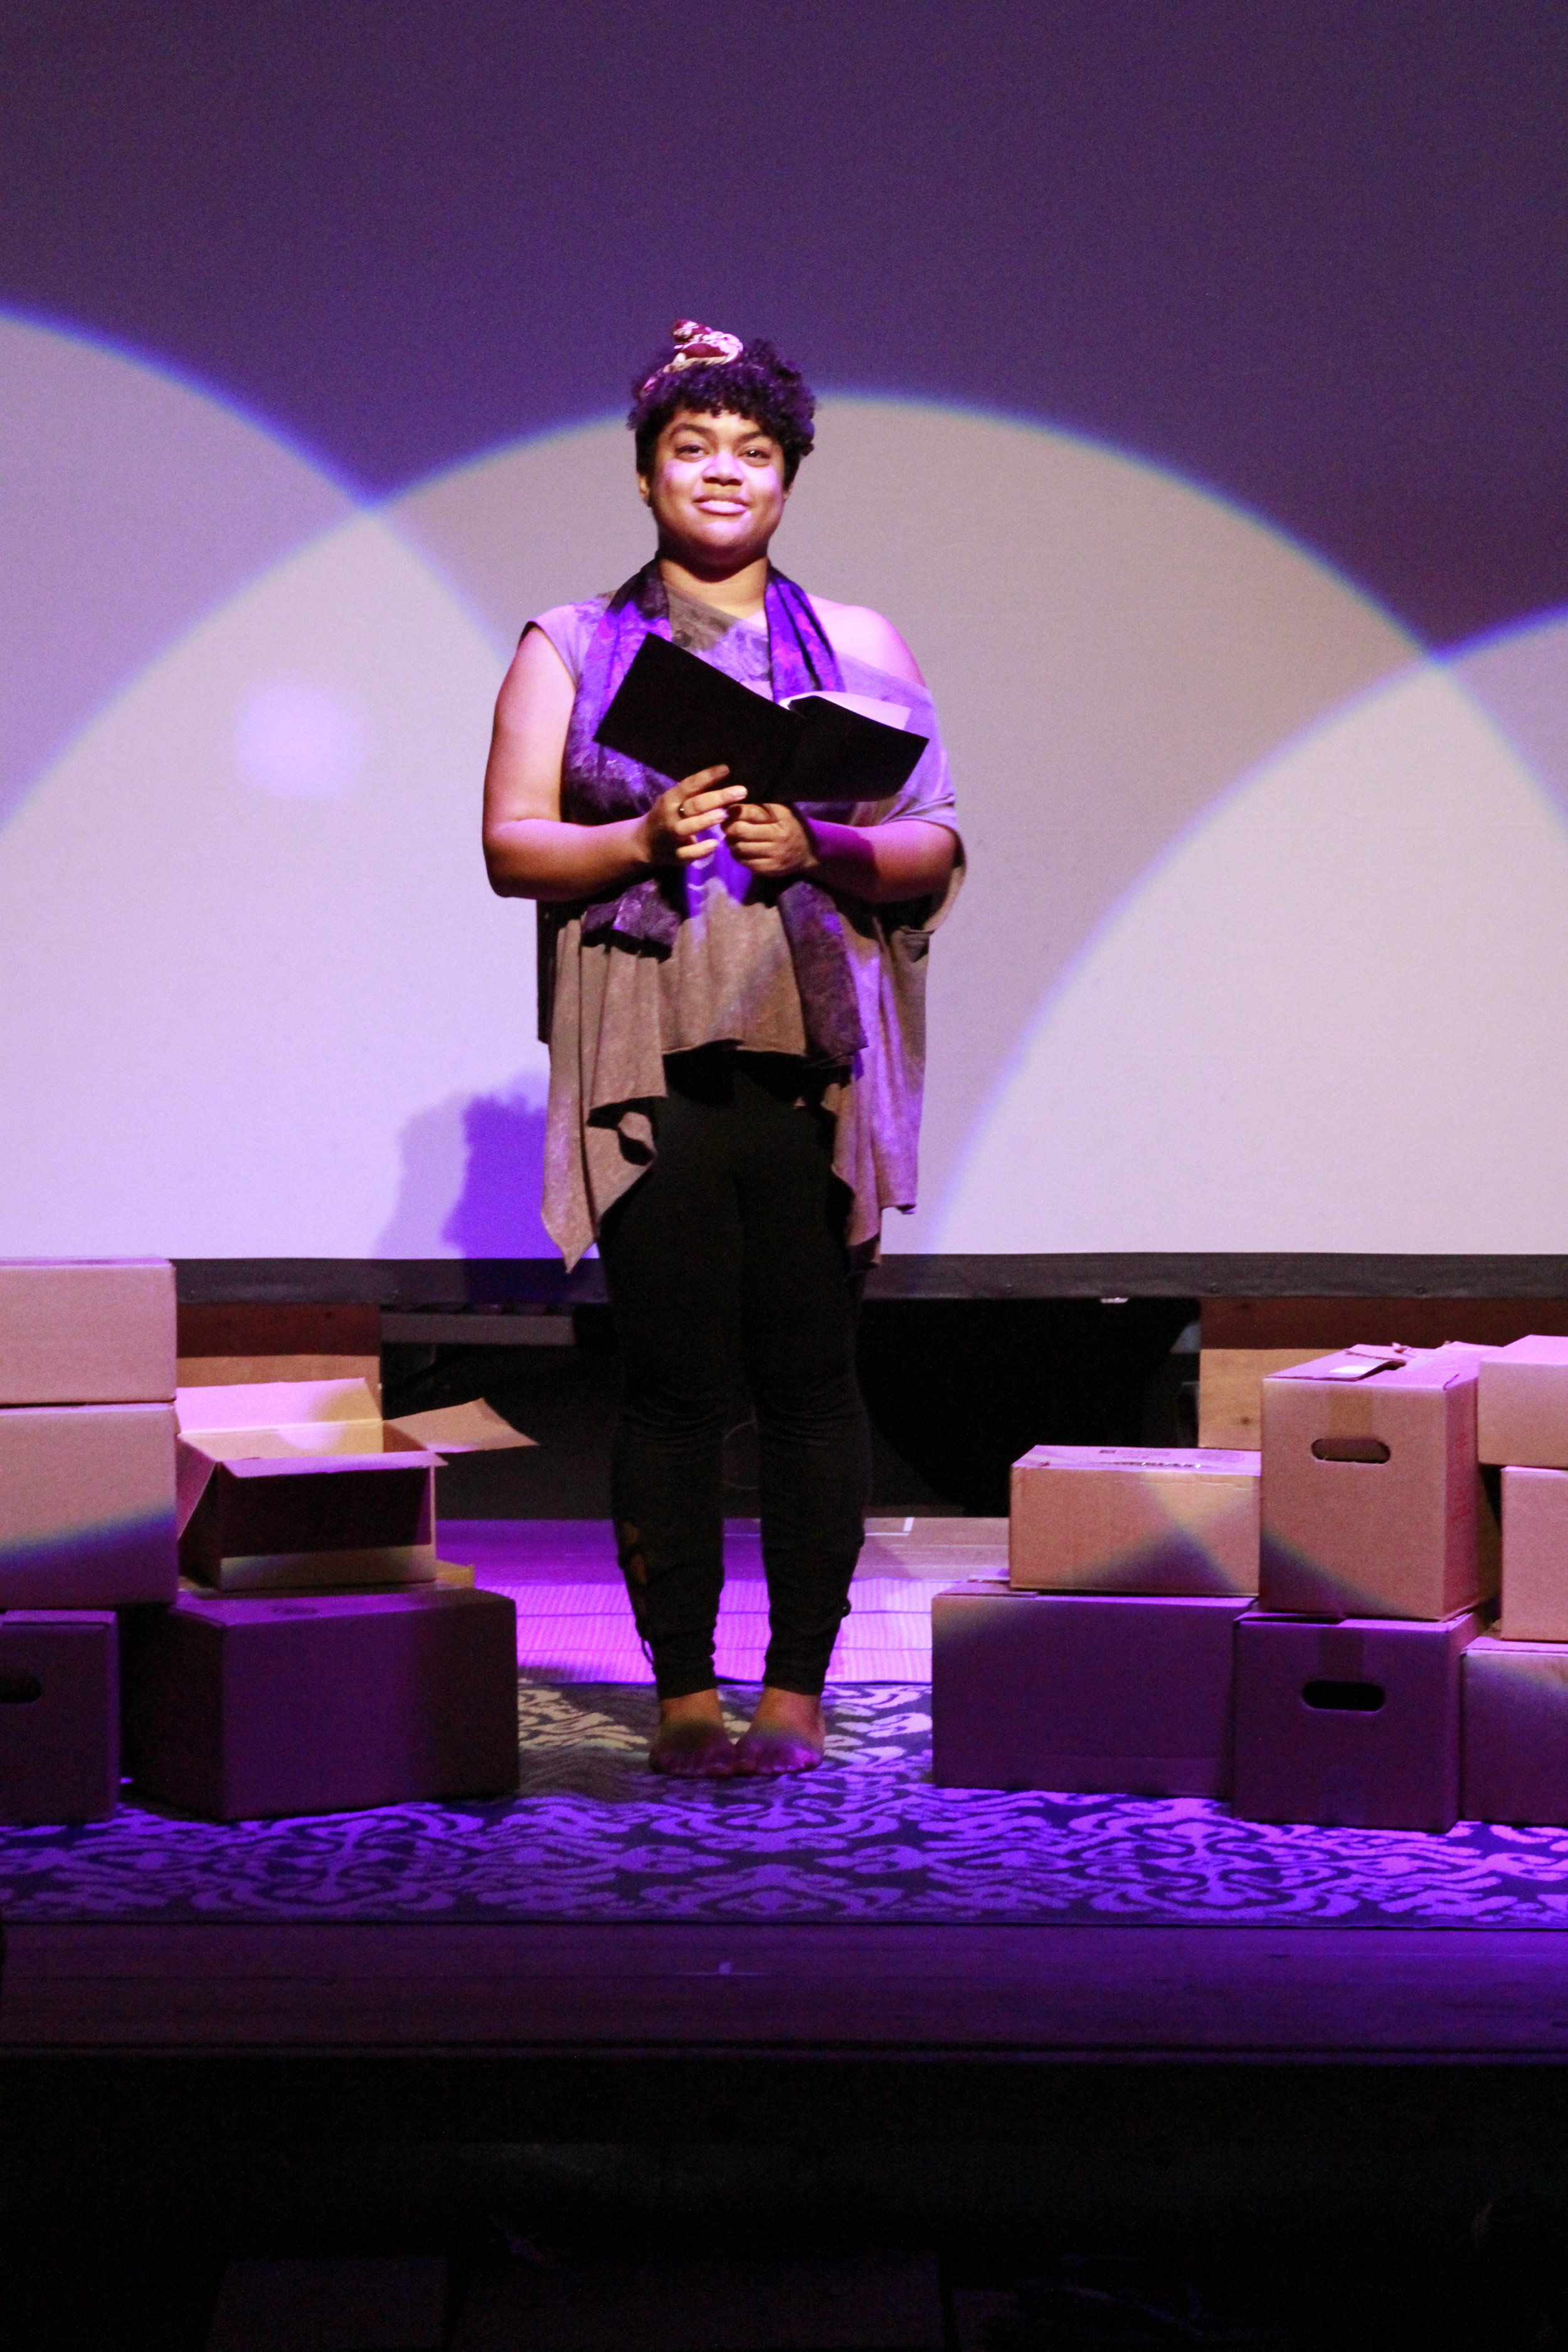 unboxed: a healing. Photo by Ronaldo Sepulveda II, OUTsider Festival 2018.